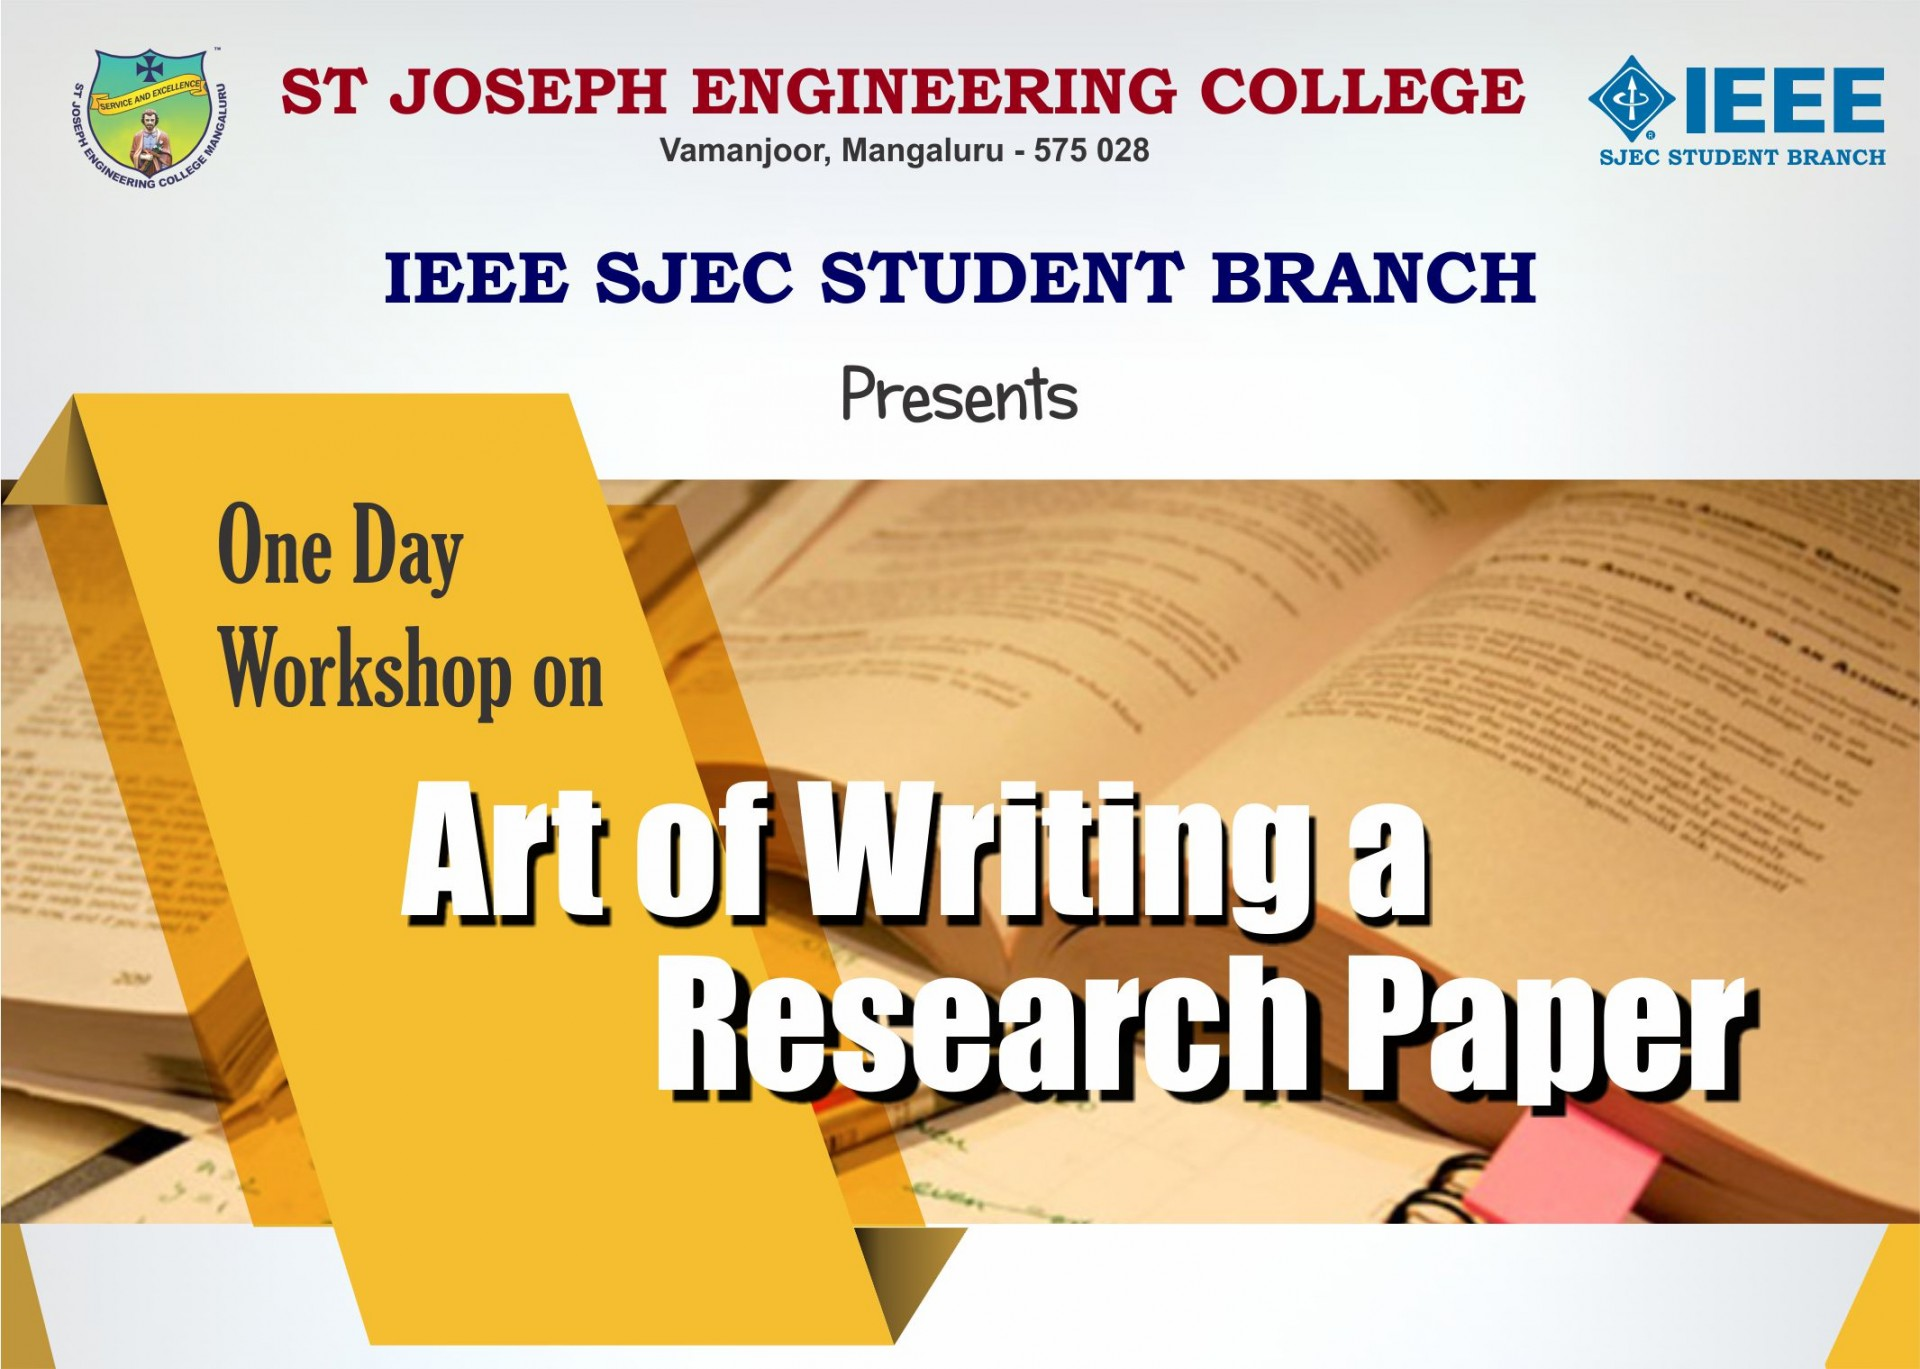 016 Workshop Banner Writing Research Phenomenal A Paper Outline Apa Style Sample In Political Science Example Of Proposal Format 1920